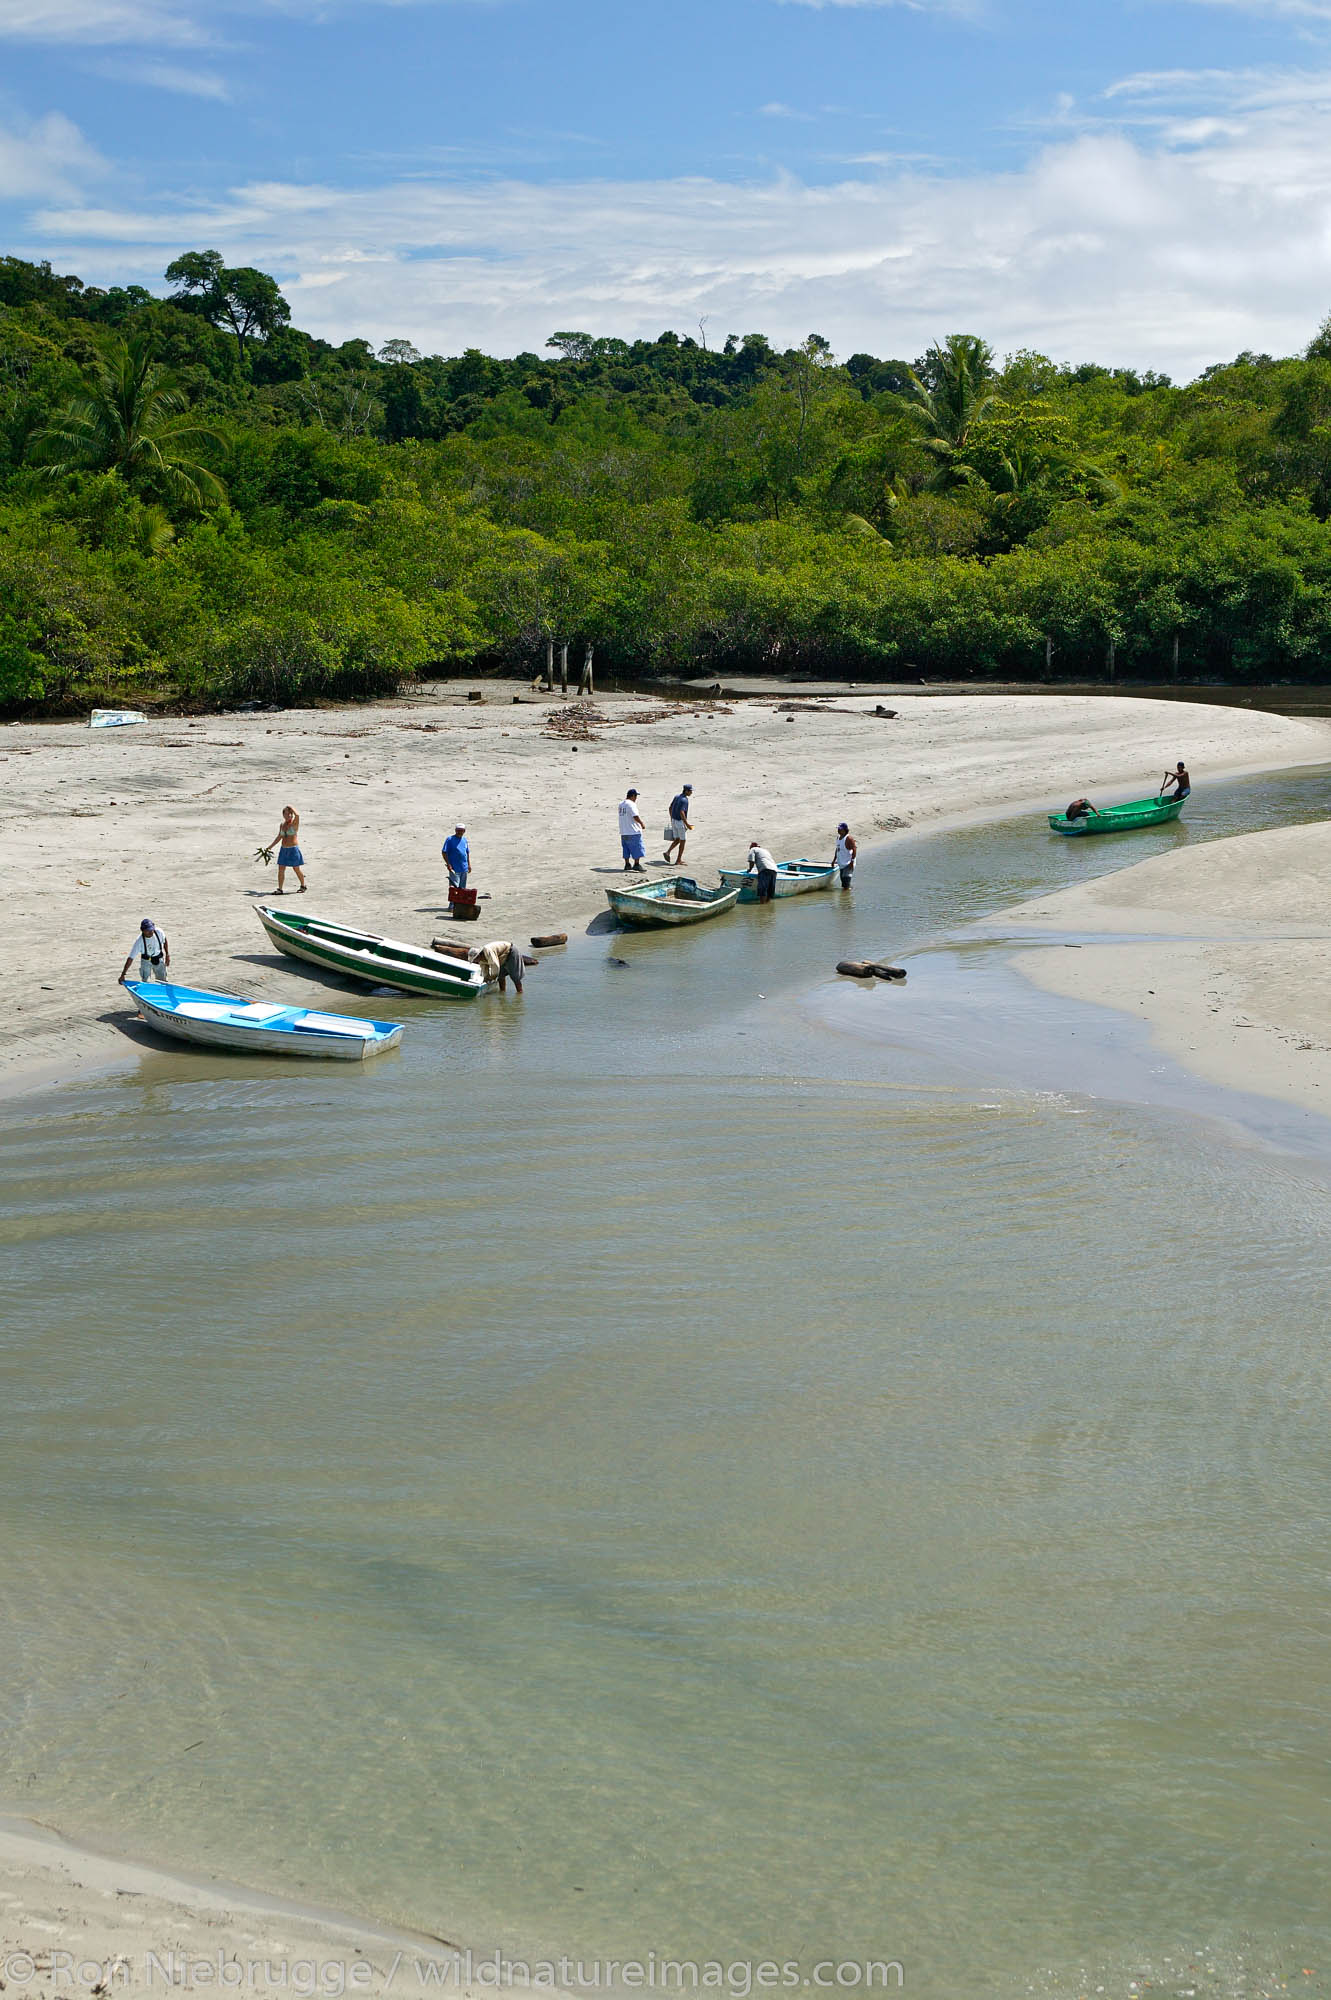 The boats ferry tourists into Manuel Antonio National Park at First Beach and the Pacific Ocean at Manuel Antonio, Costa Rica...